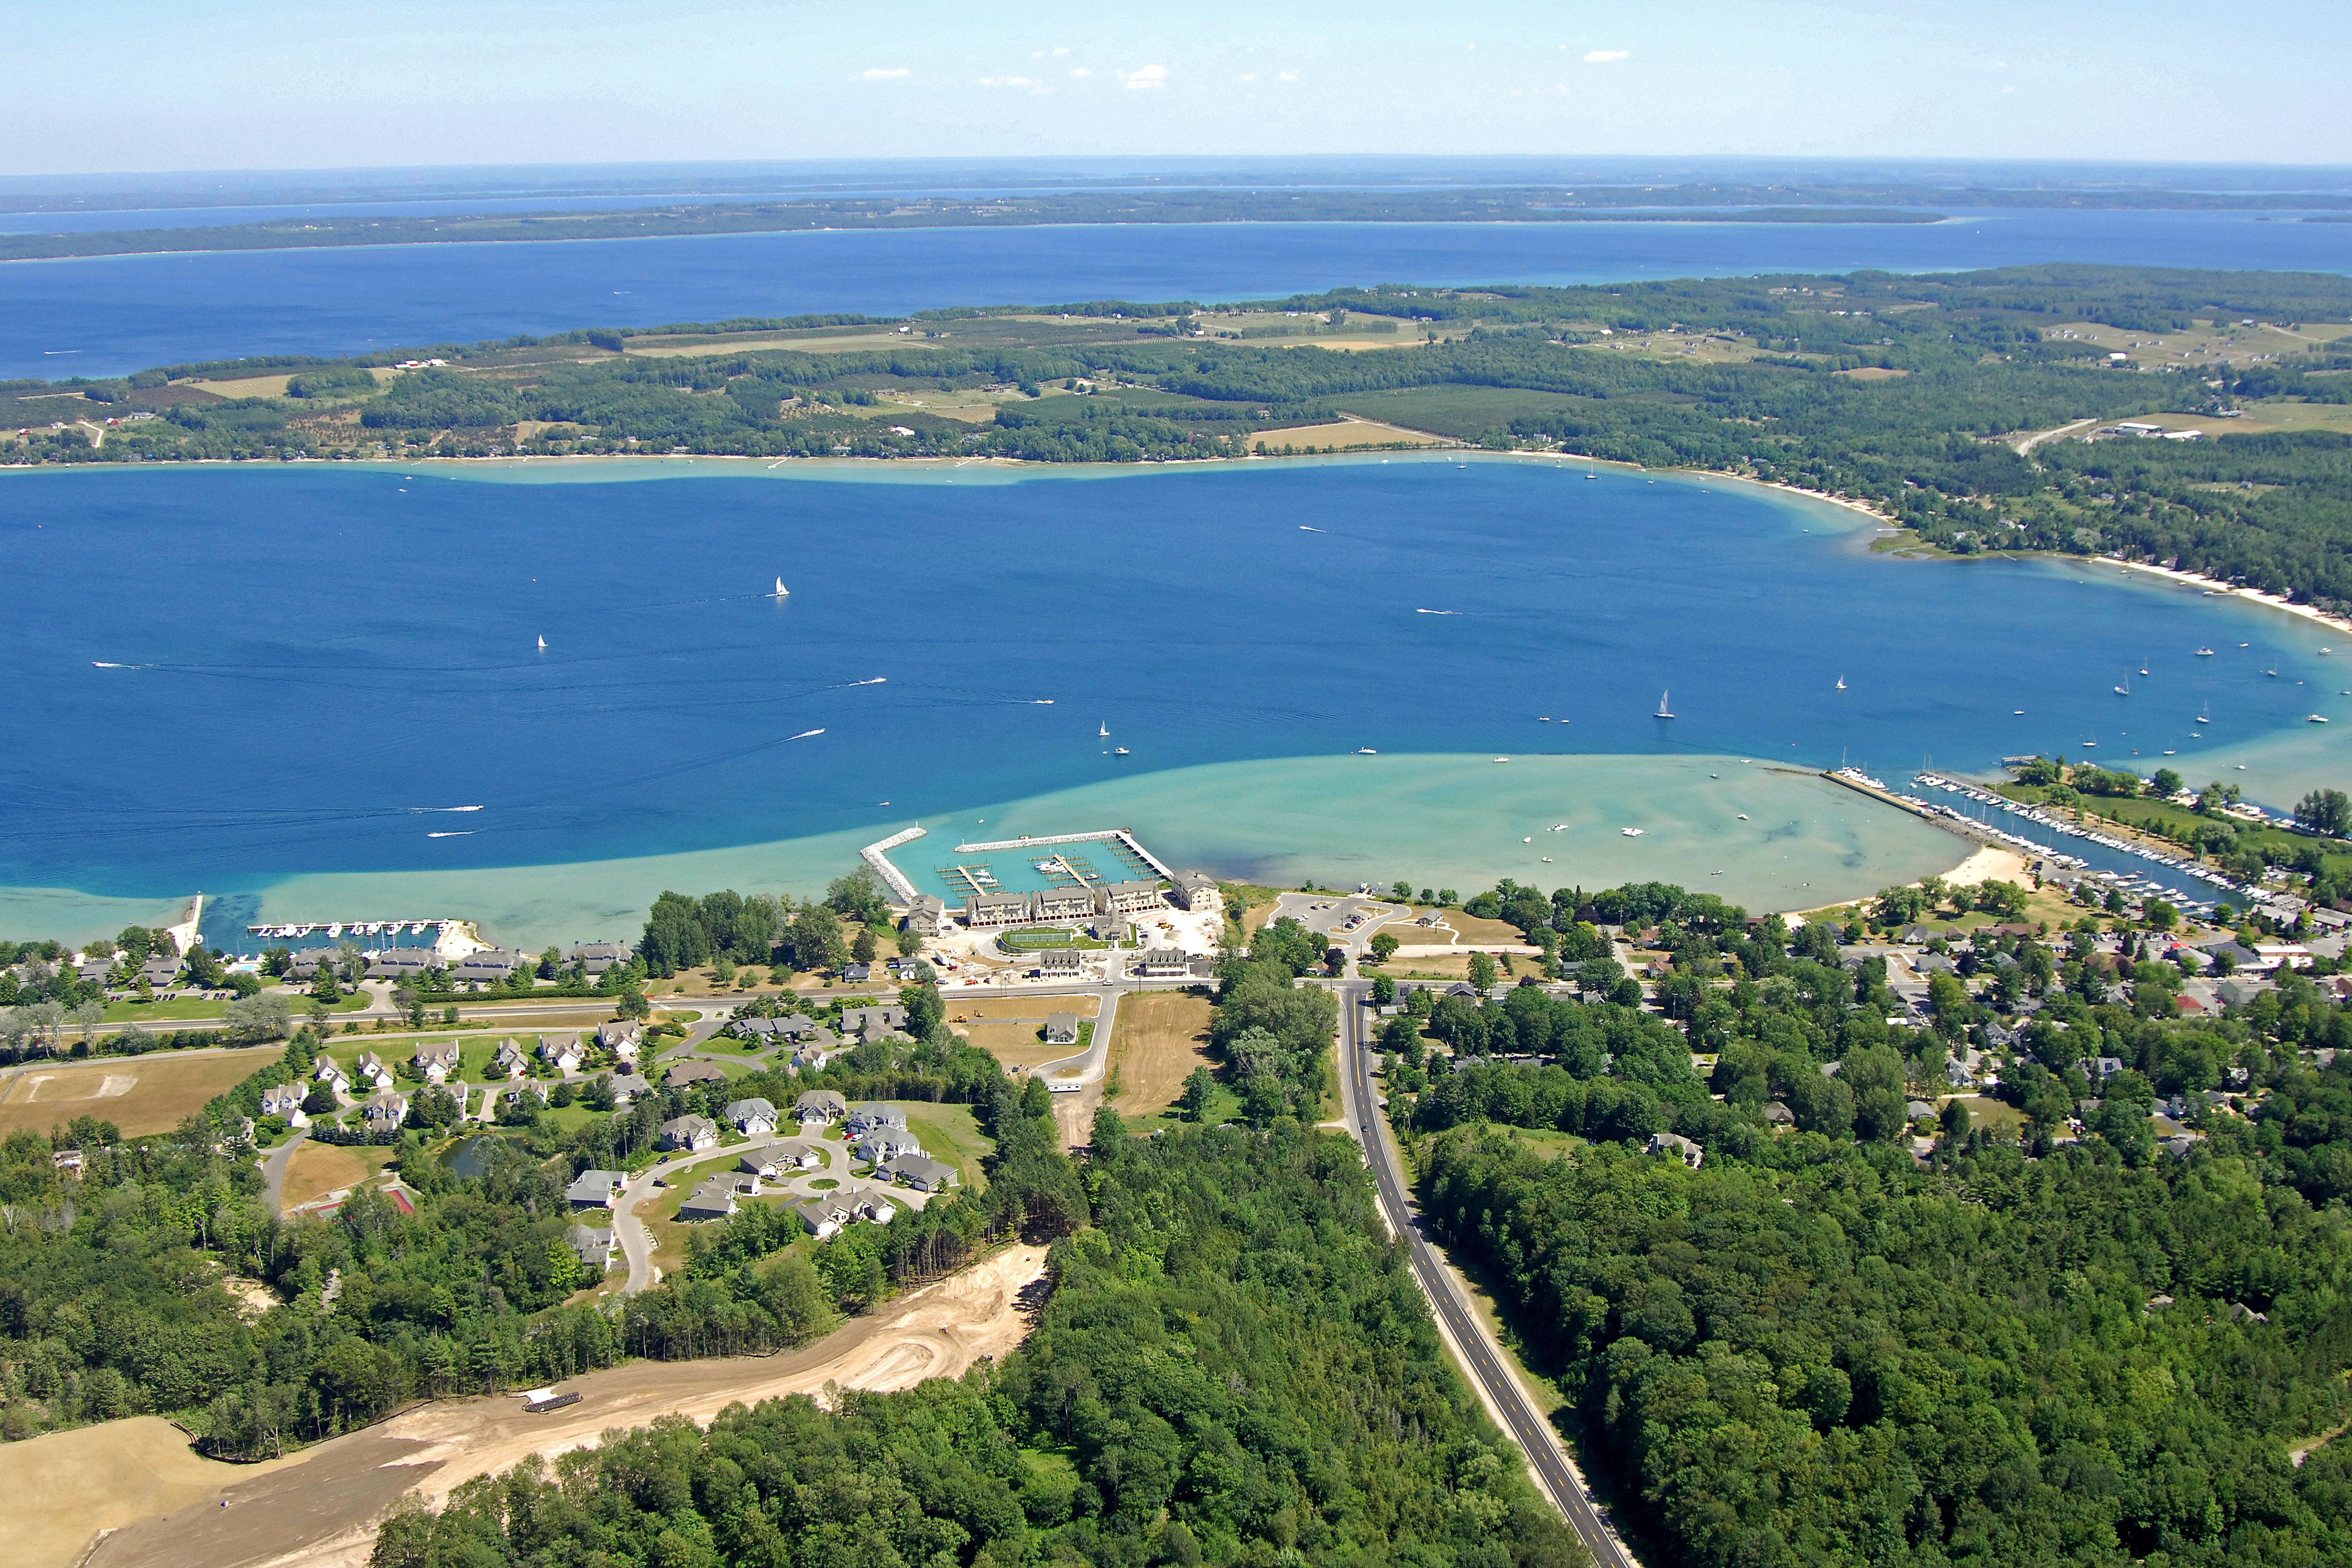 suttons bay See properties located closest to the center first with confirmed availability for your dates from our partners.